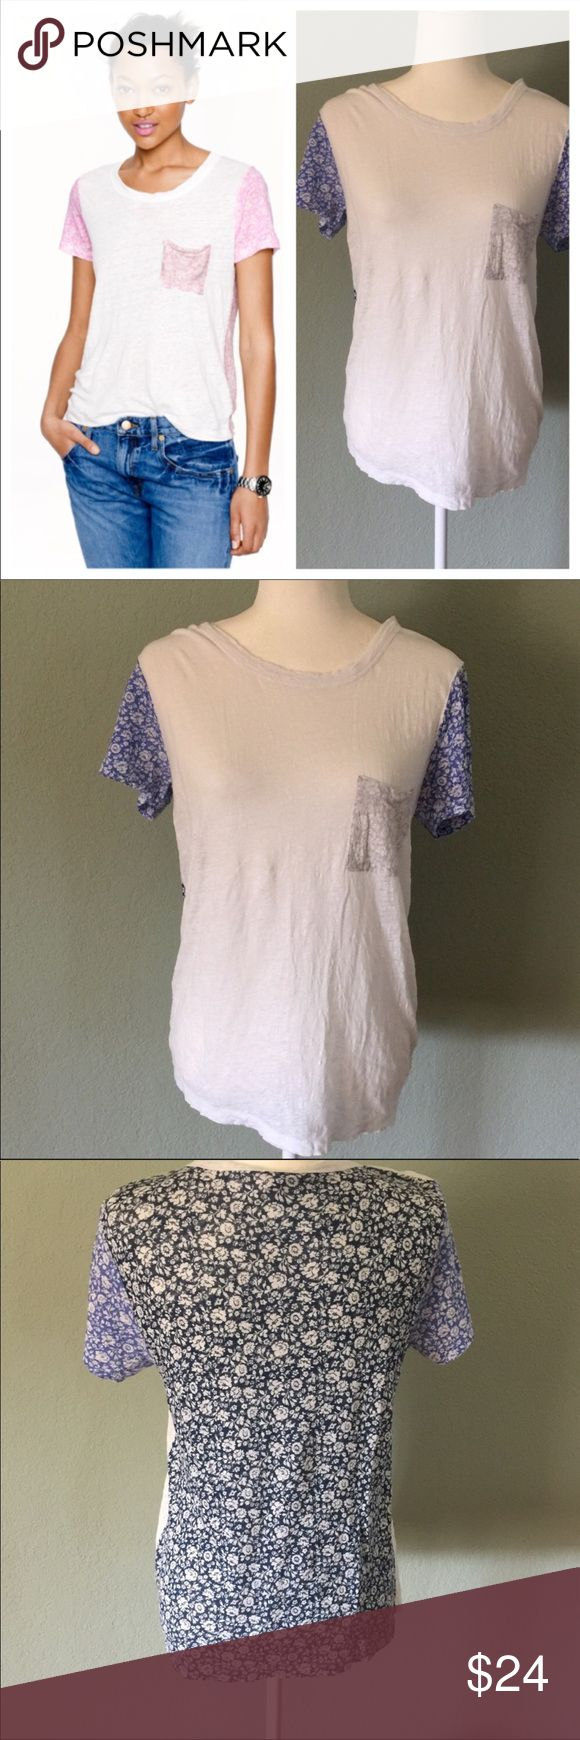 """J.Crew Ditzy linen tee J.Crew ditzy linen tee.  Cute white and blue floral linen T-shirt.  Loose fit, light gray floral front pocket, medium blue floral sleeves, navy blue floral back.  Nice light linen material.  Size medium.  Approximate measurements 18"""" armpit to armpit, 24.5"""" length.   Please note - linen is not smooth like cotton and the tee has a """"distressed"""" type of look. EUC J. Crew Tops Tees - Short Sleeve"""